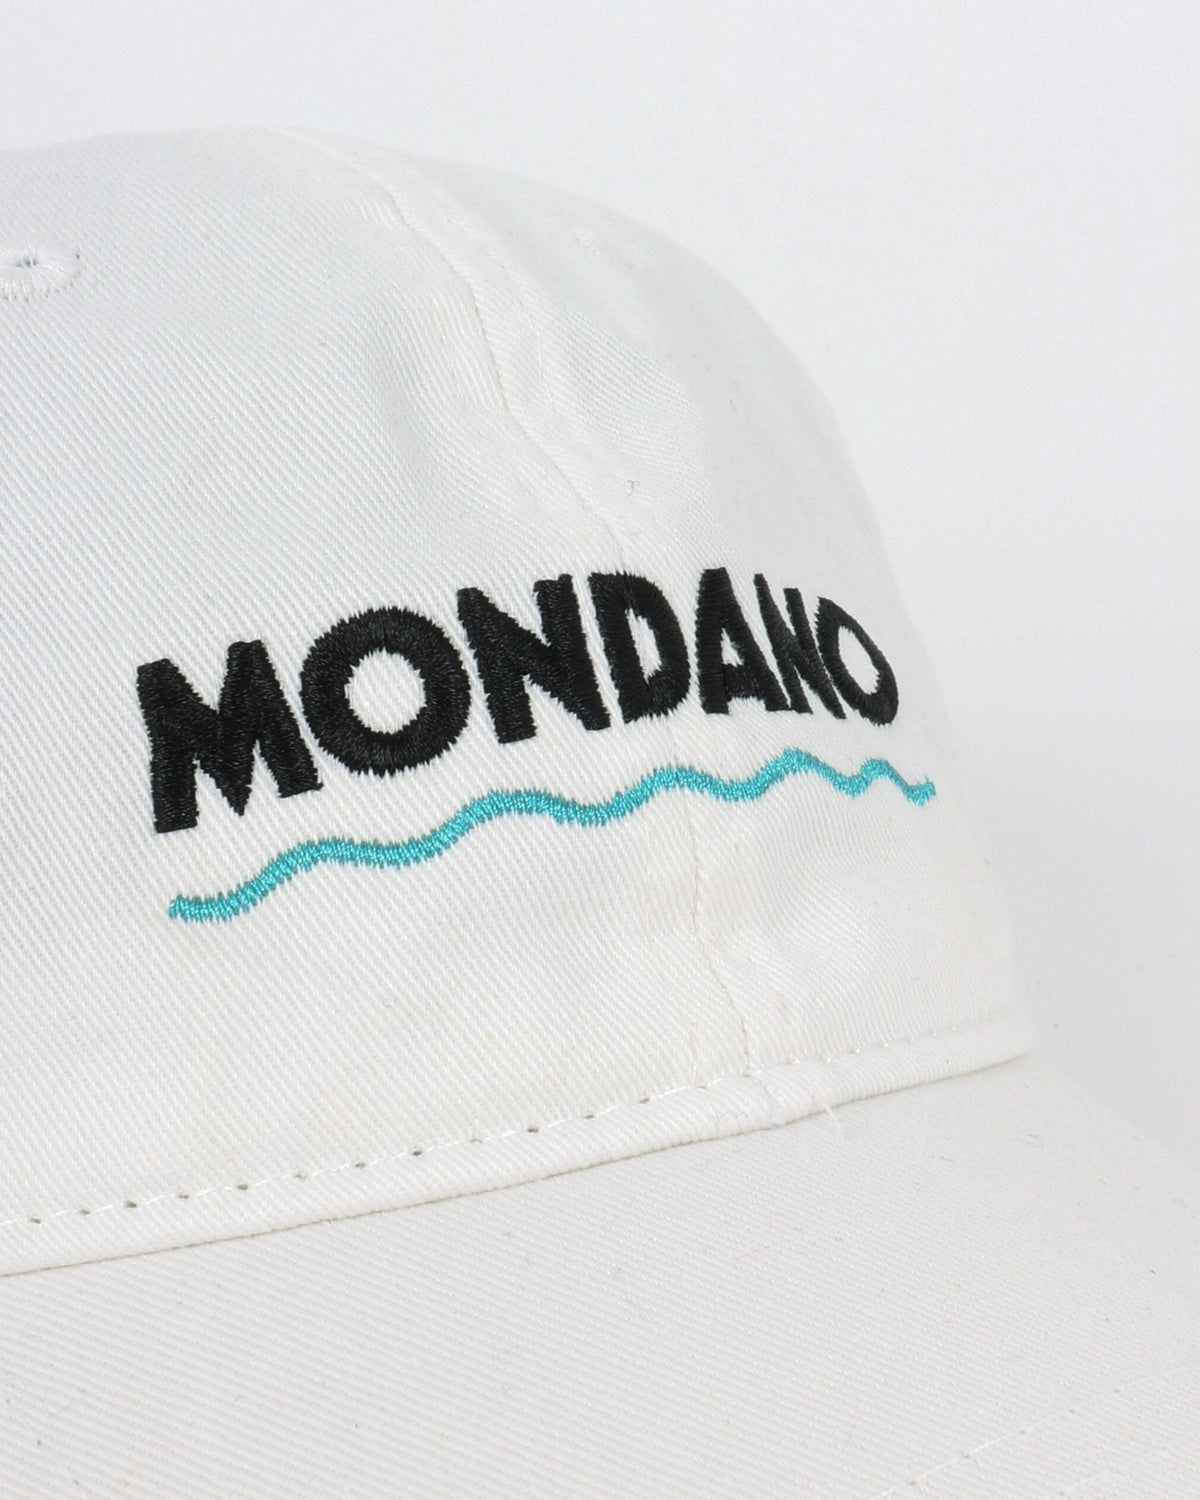 wood wood_low profile cap_mondano_white_2_2